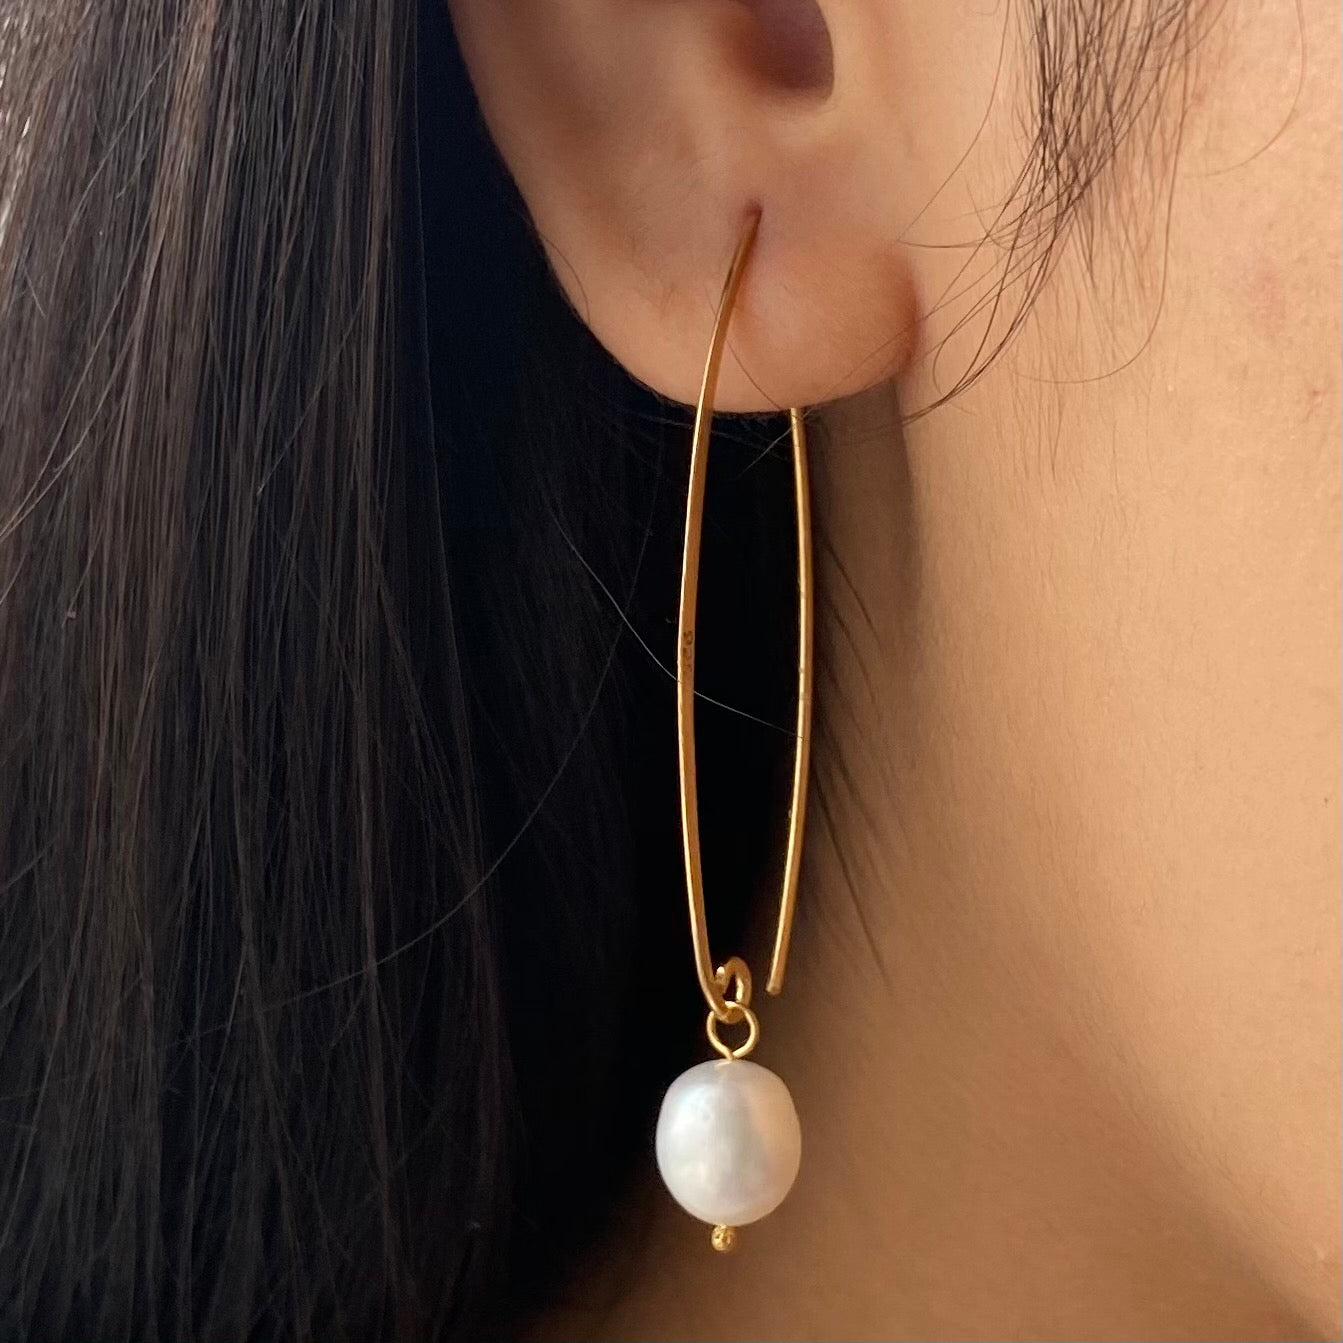 Gold Plated Long Silver Earrings with White Pearl Drop